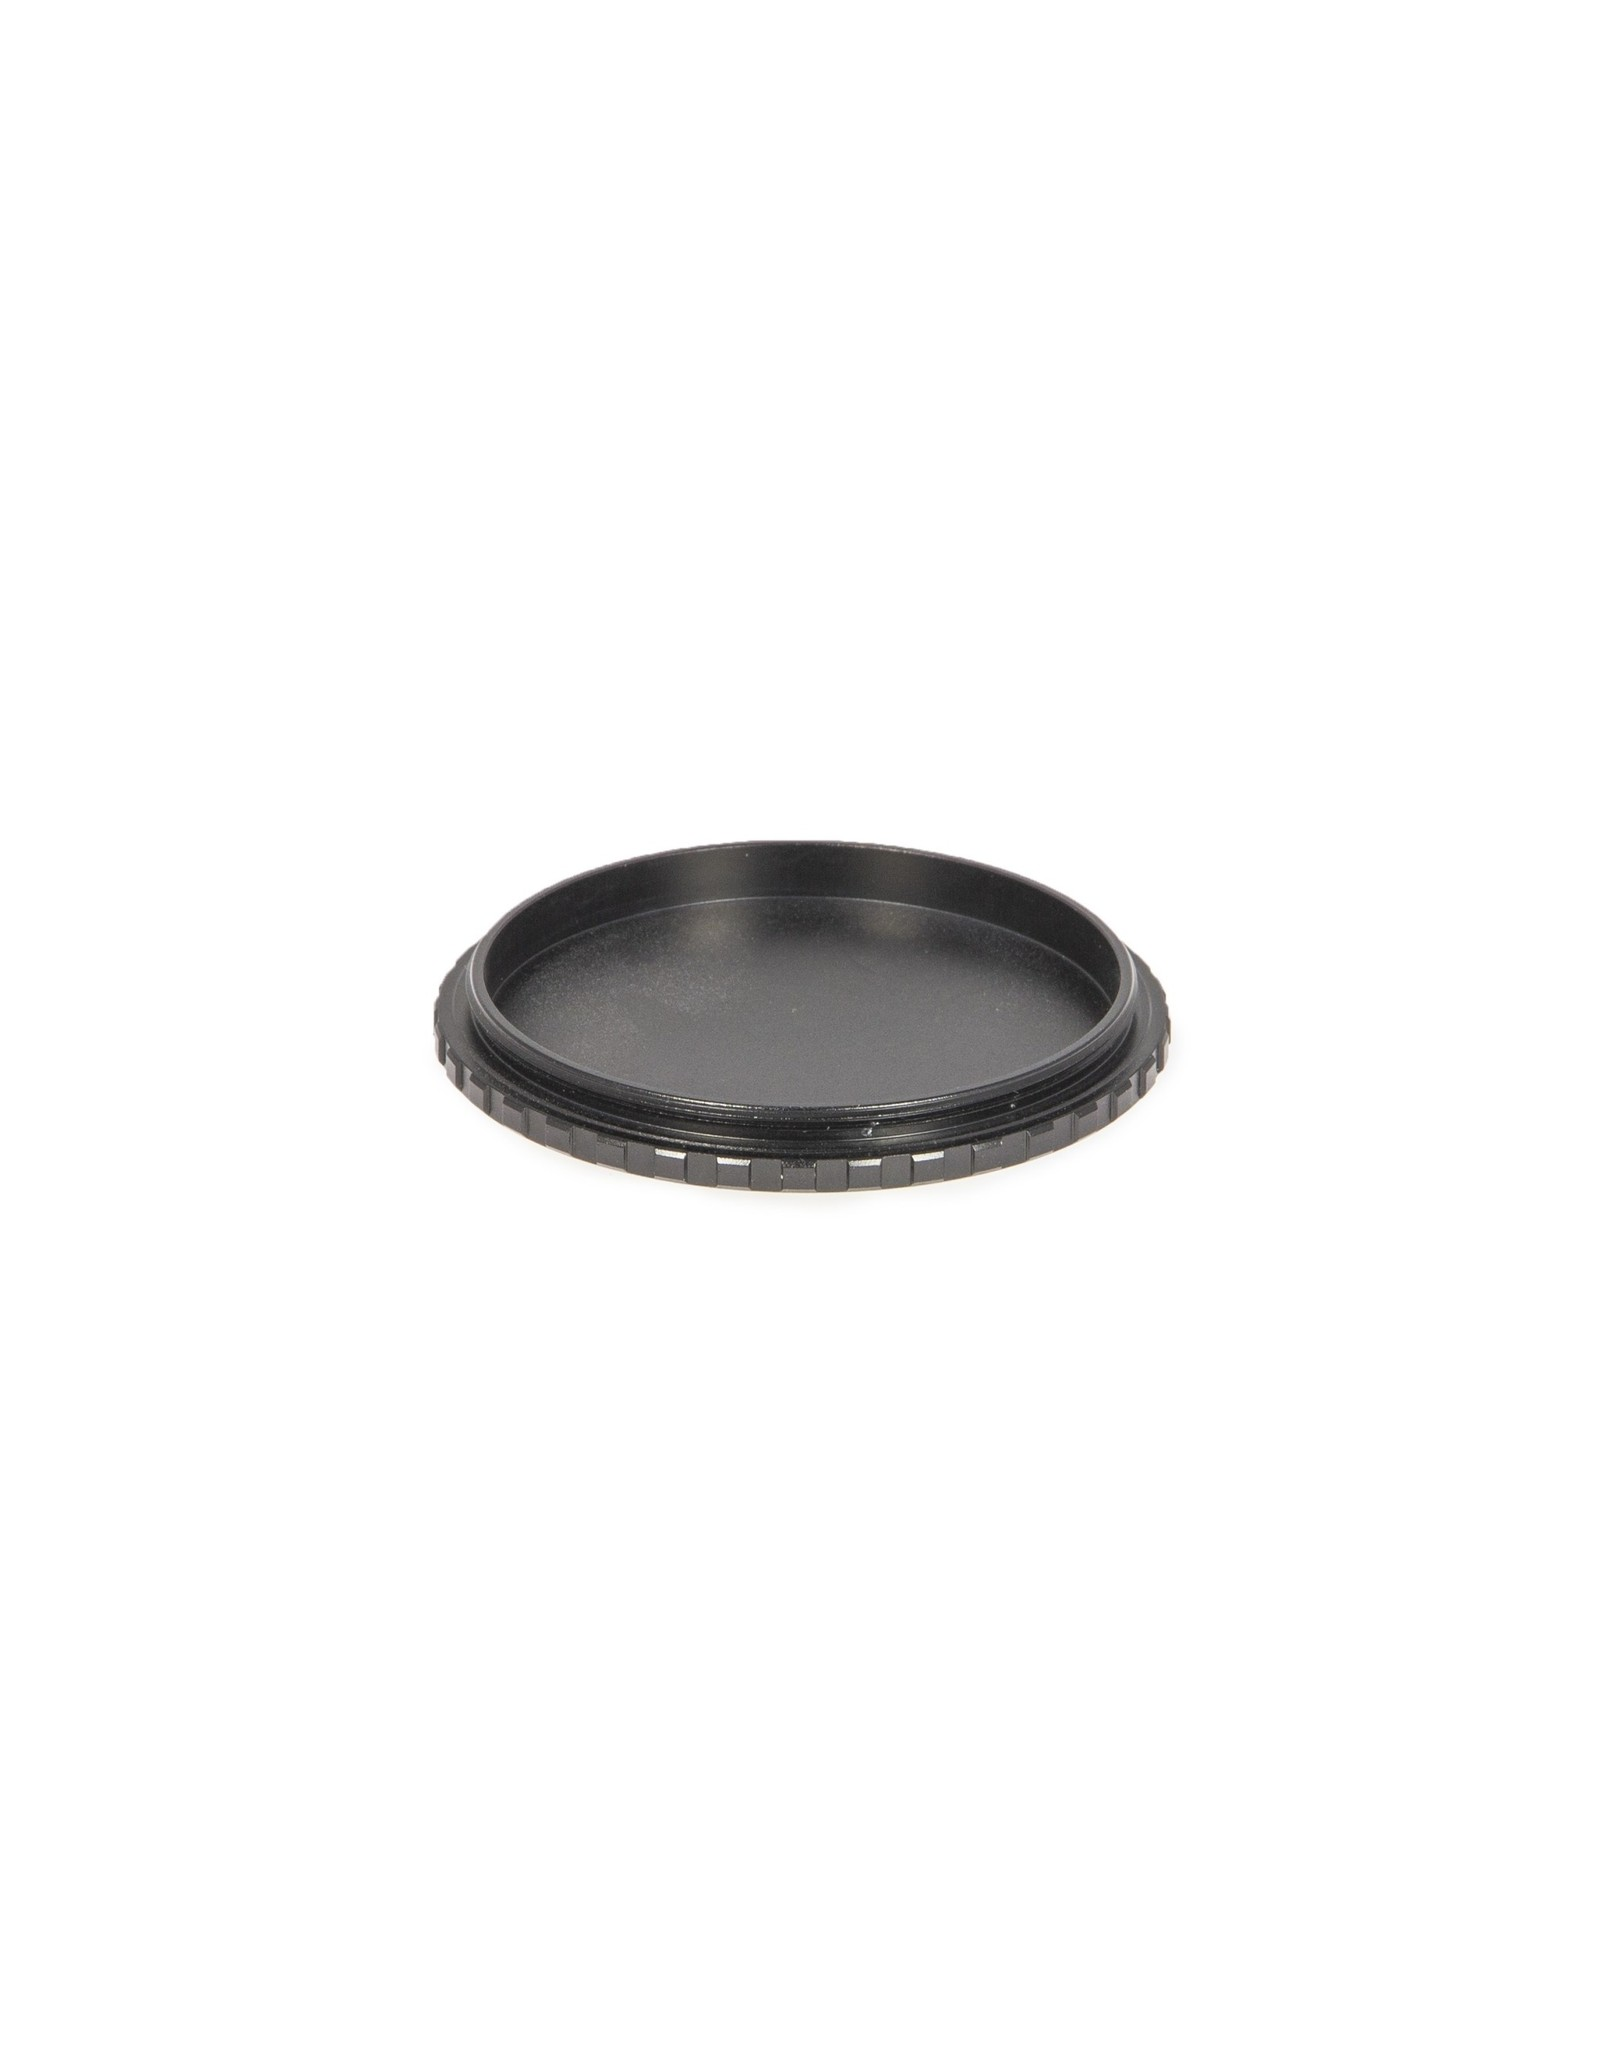 Baader Planetarium Baader Metal M68 Dustcap with M68 x 1 male thread